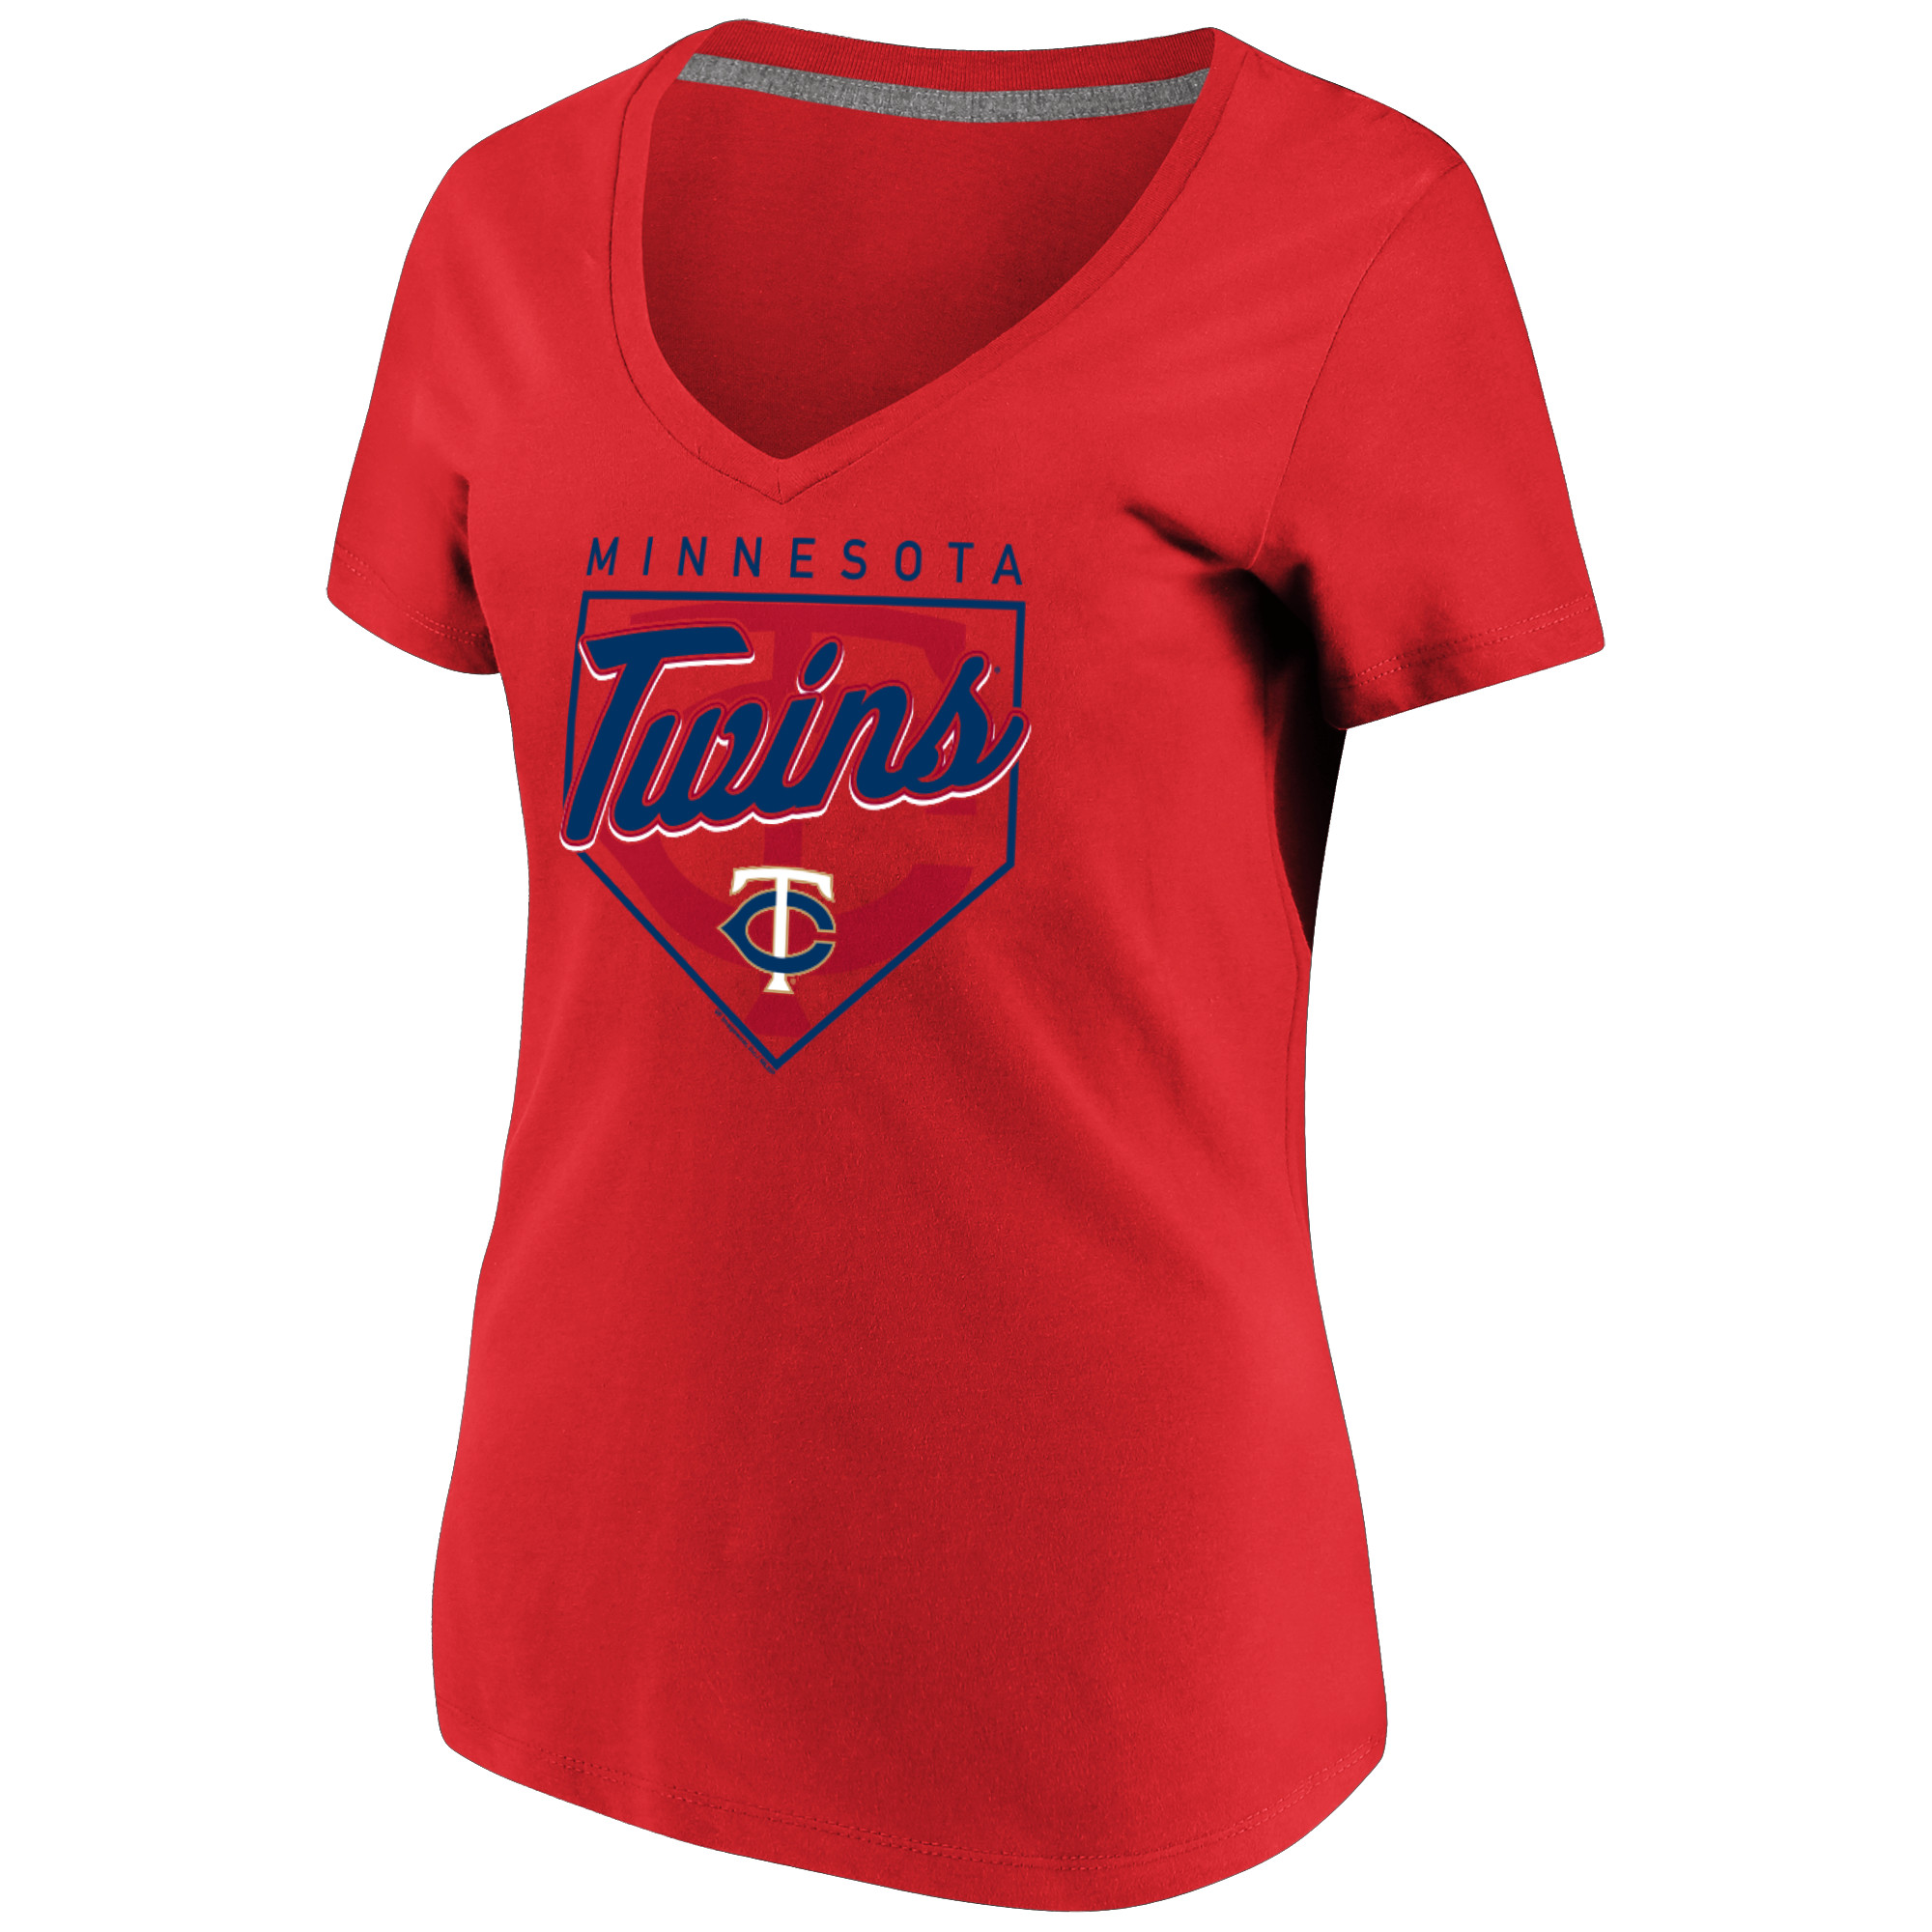 Women's Majestic Red Minnesota Twins Cling to the Lead V-Neck T-Shirt